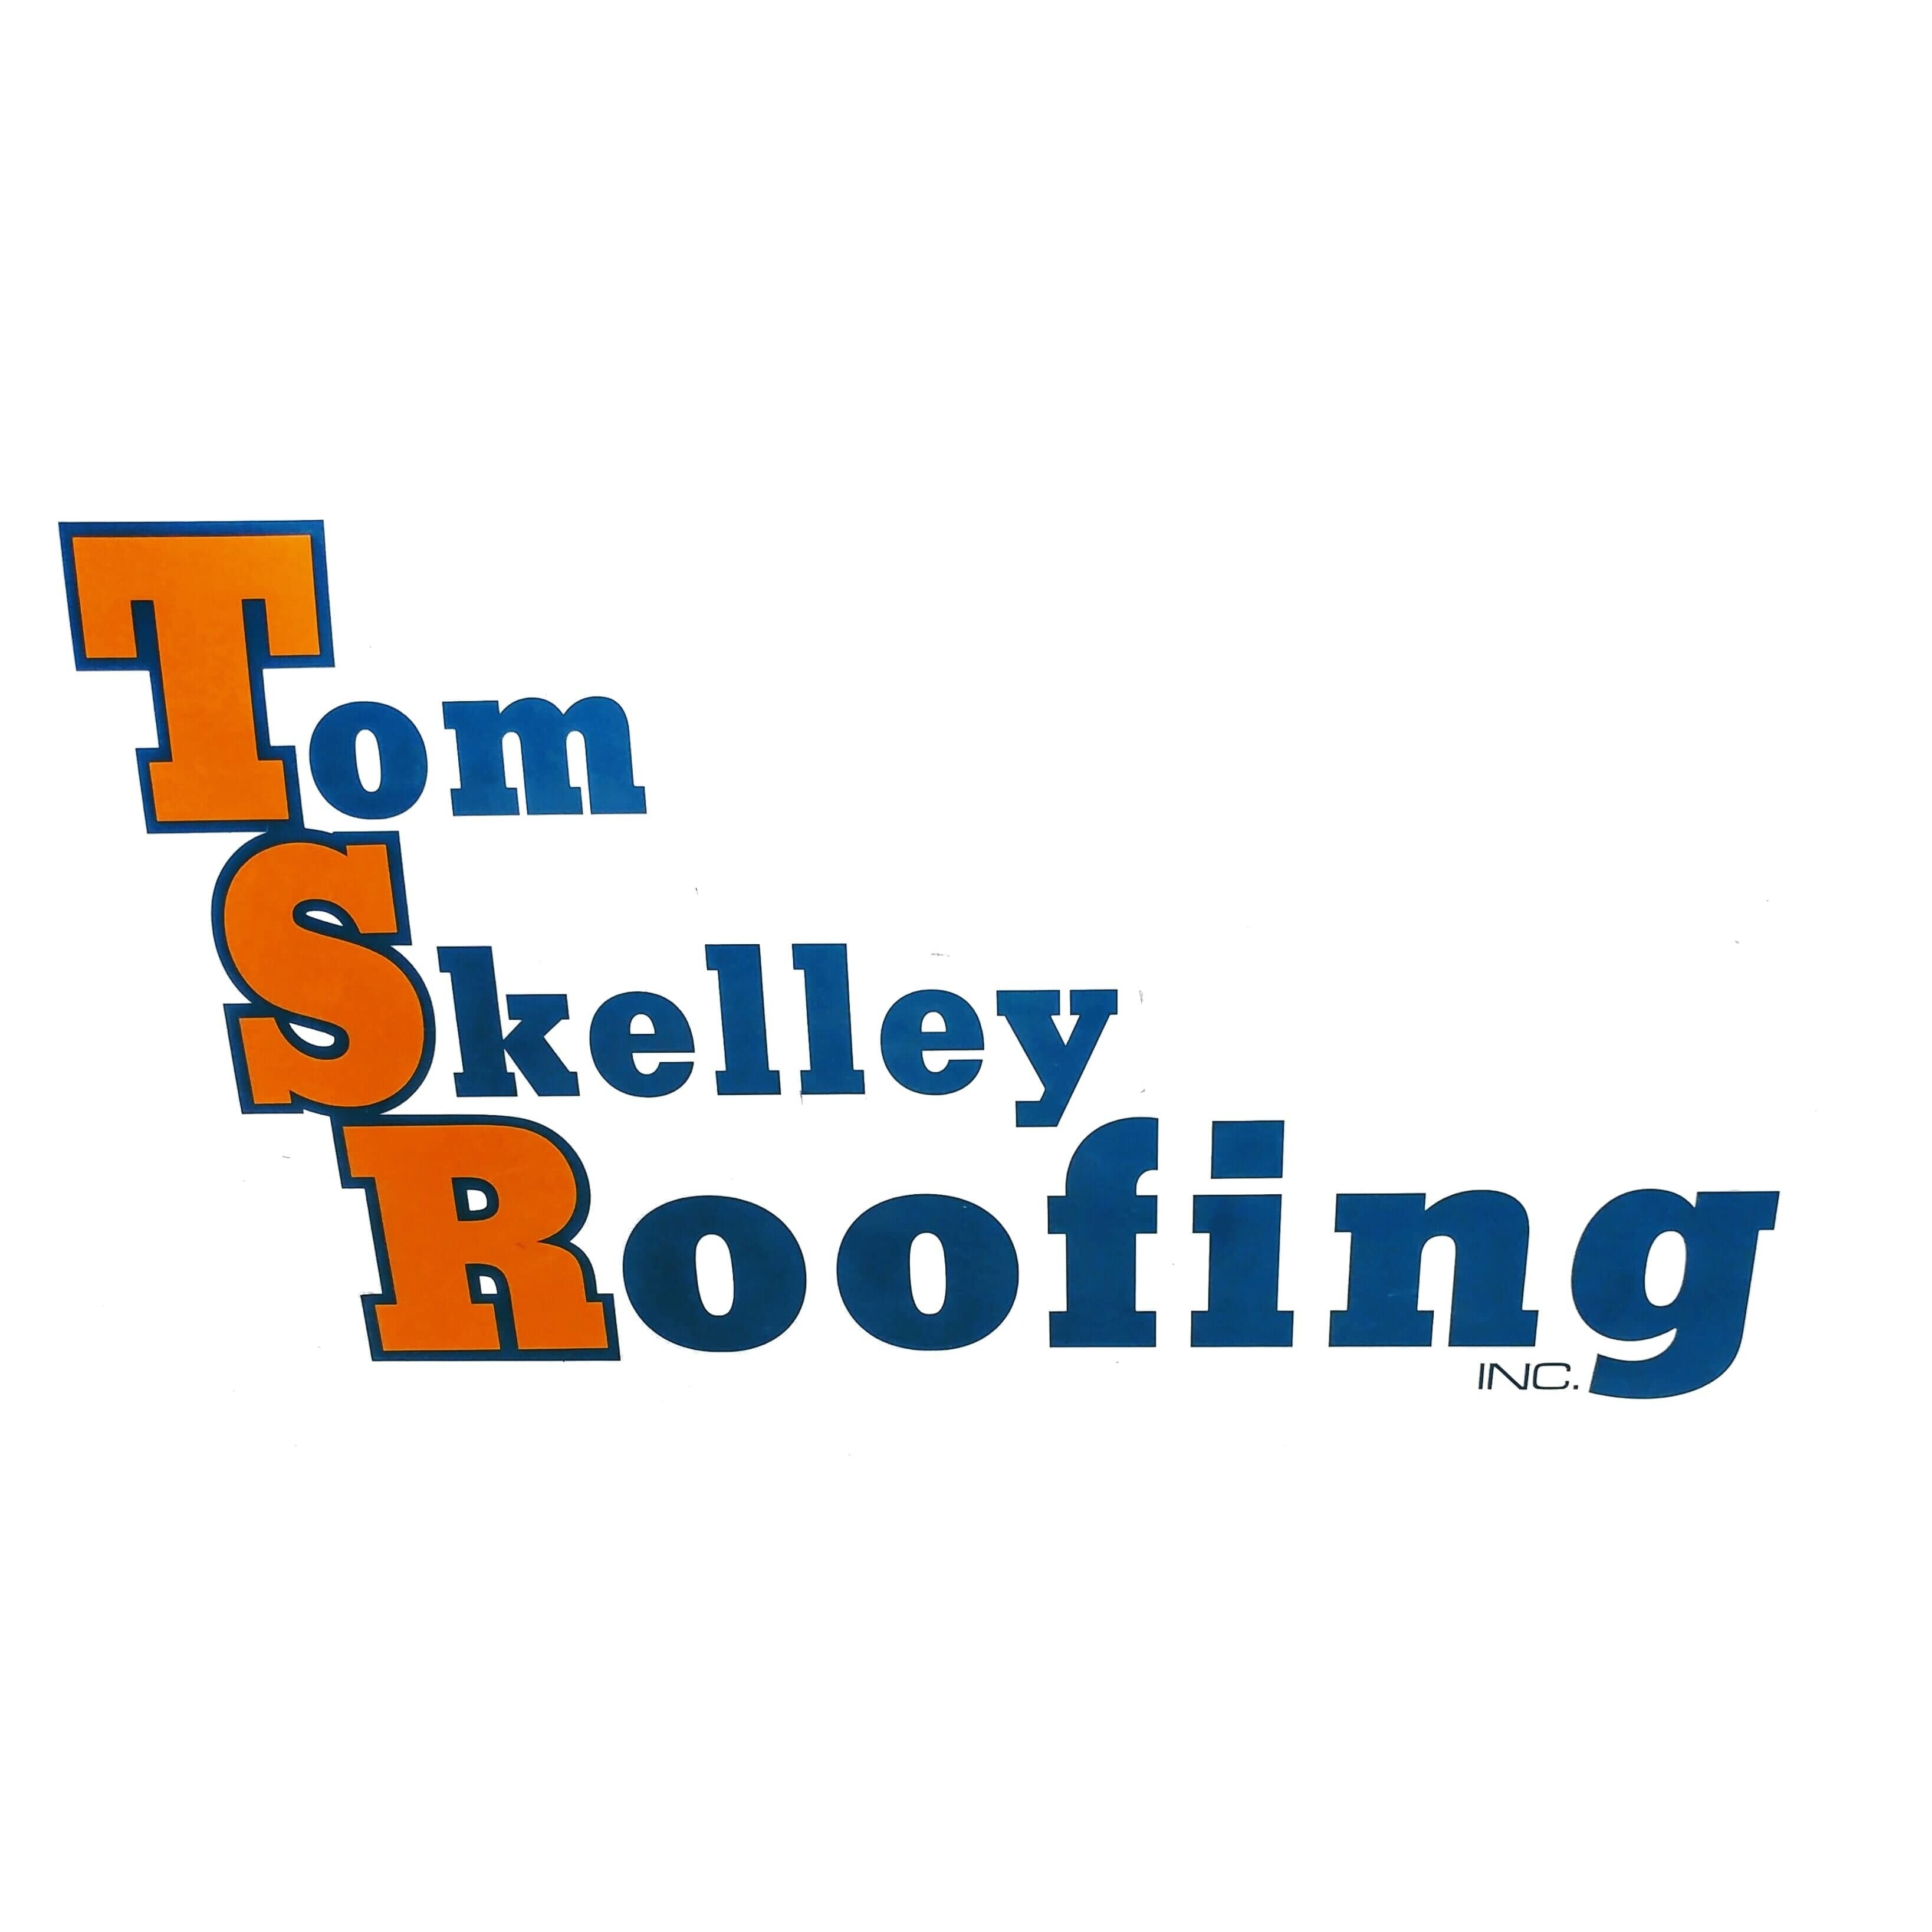 Tom Skelley Roofing Inc - Decatur, IL - Roofing Contractors